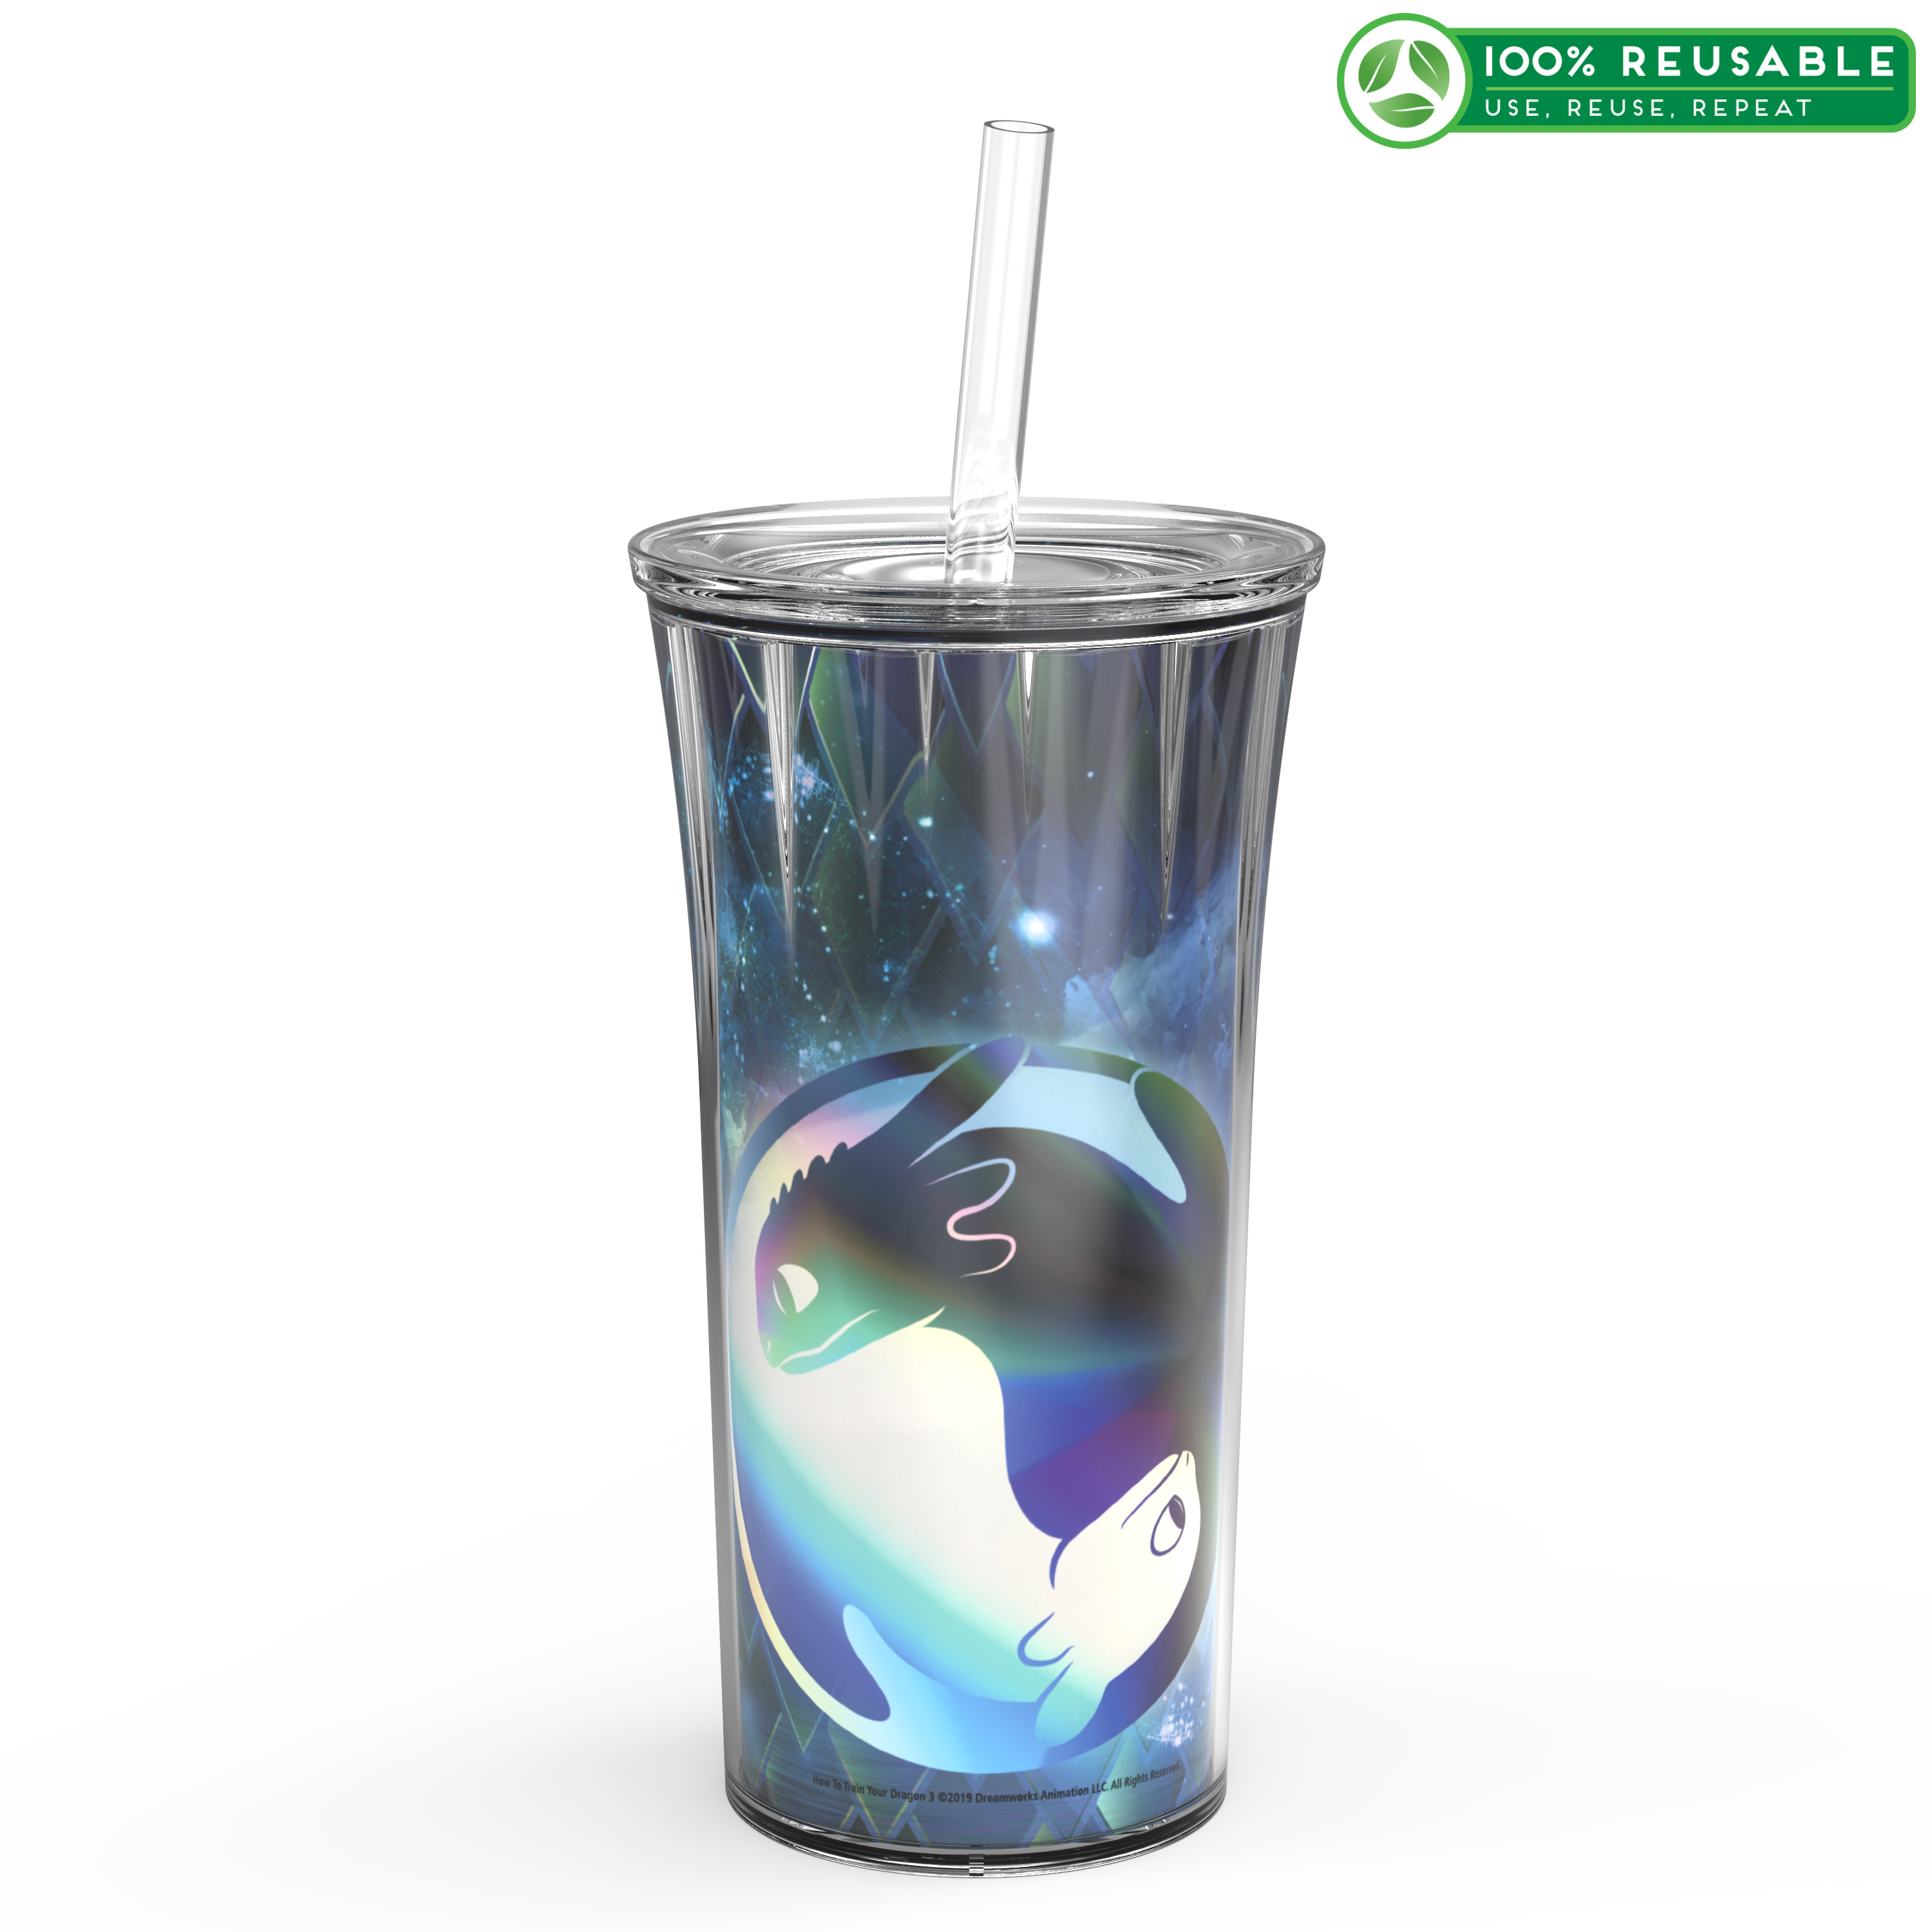 Dreamworks Animation 20 ounce Insulated Tumbler, How to Train Your Dragon 3 slideshow image 1